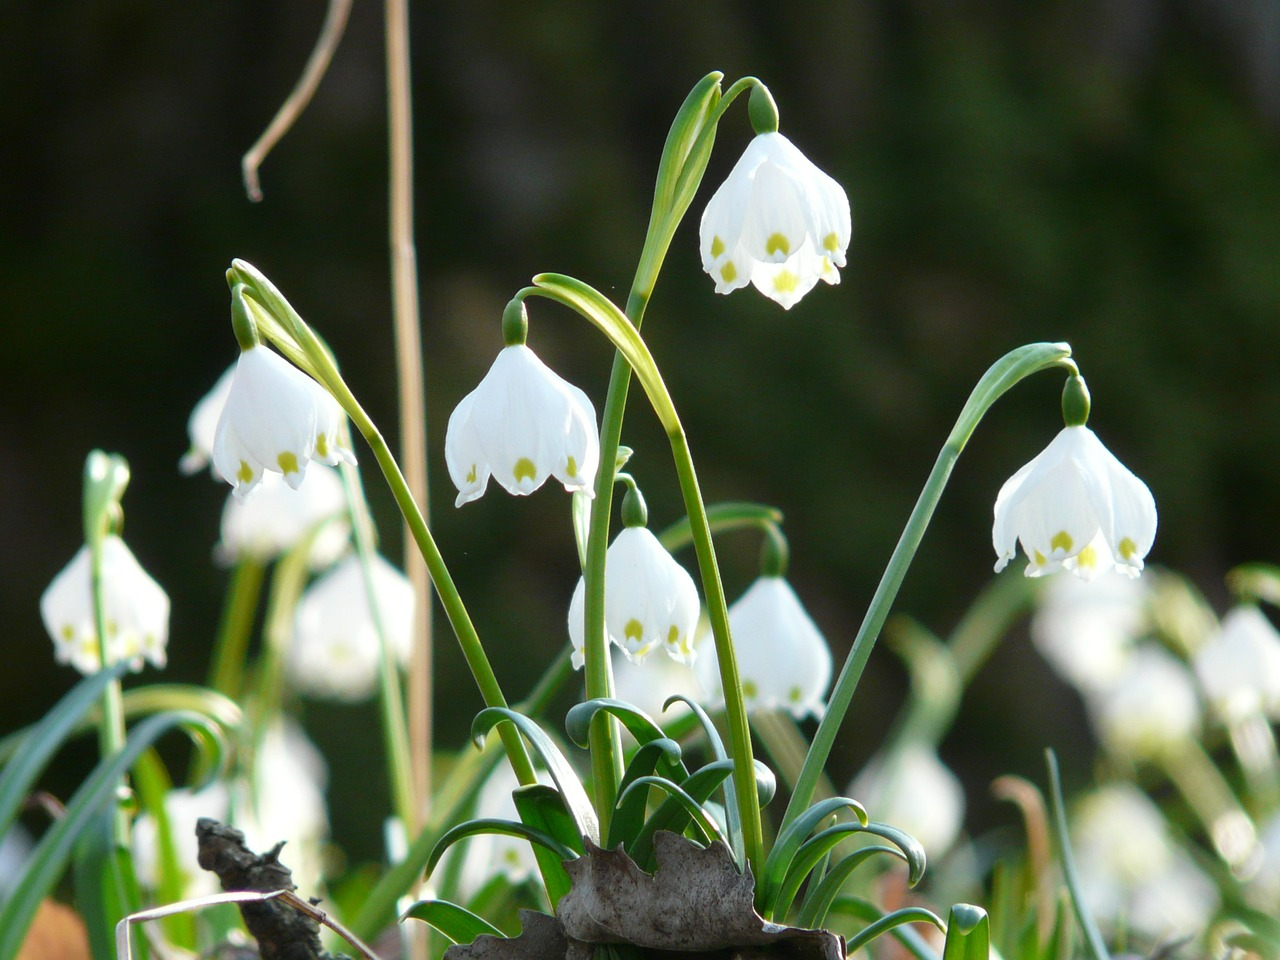 snowflake,spring,spring flower,blossom,bloom,flower,white,forest,forest flower,fruehlingsknotenblume,bloom,spring knotenblume,maerzgloeckchen,beautiful,idyllic,great snowdrops,leucojum vernum,amaryllidaceae,leucojum,free pictures, free photos, free images, royalty free, free illustrations, public domain